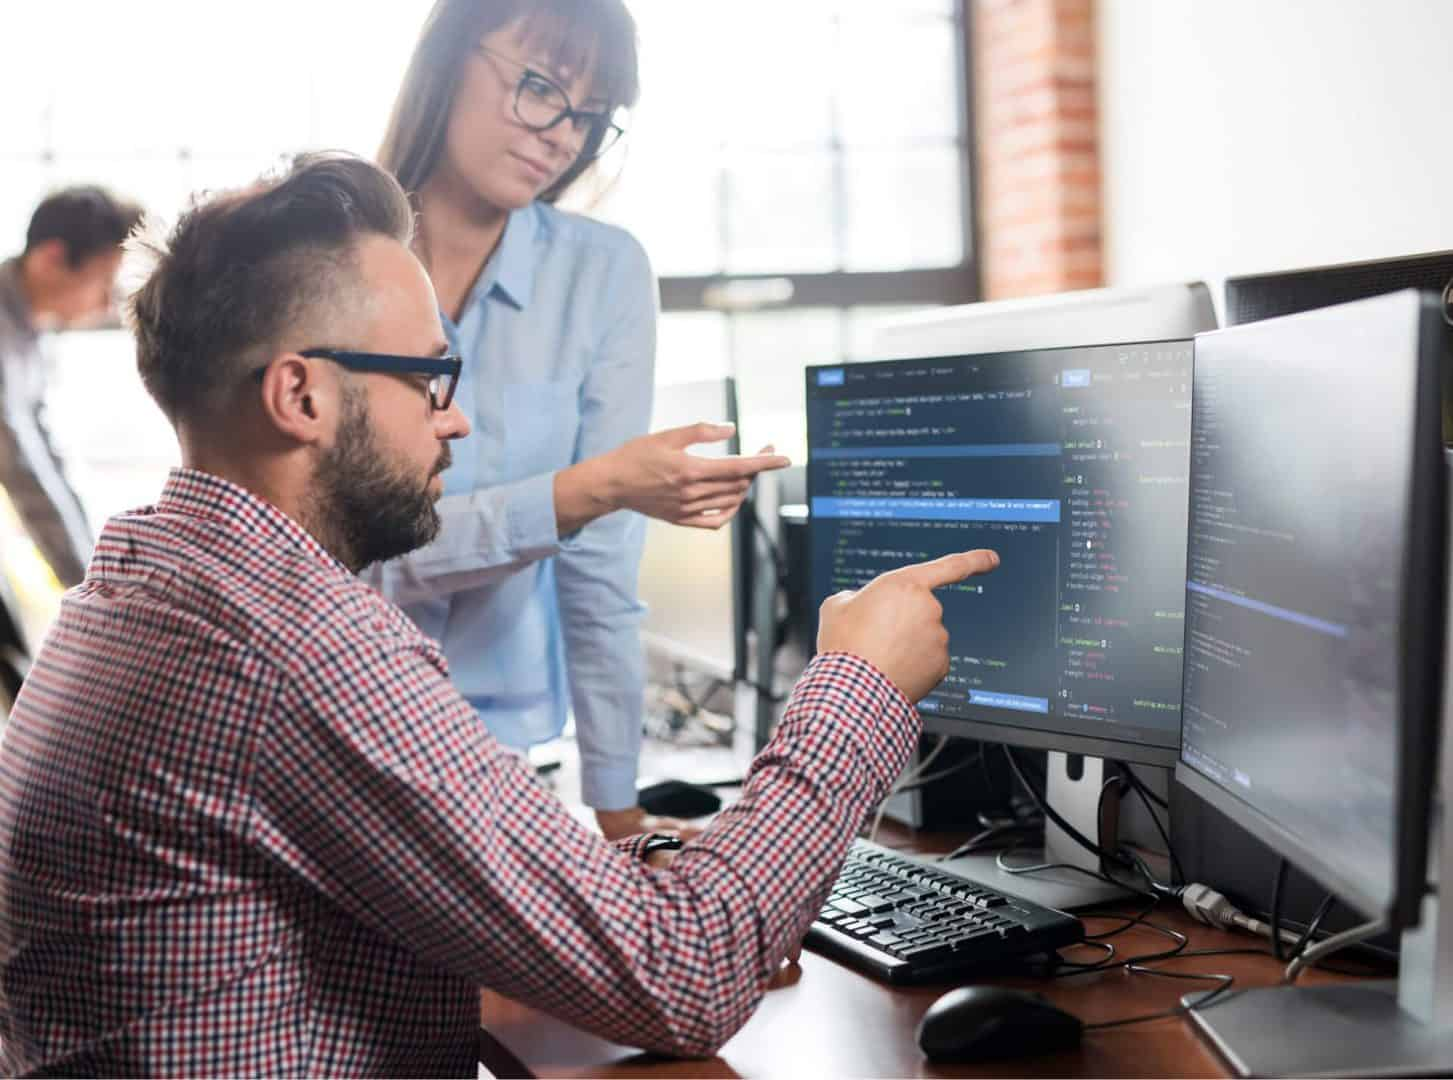 IT Support Services in Austin